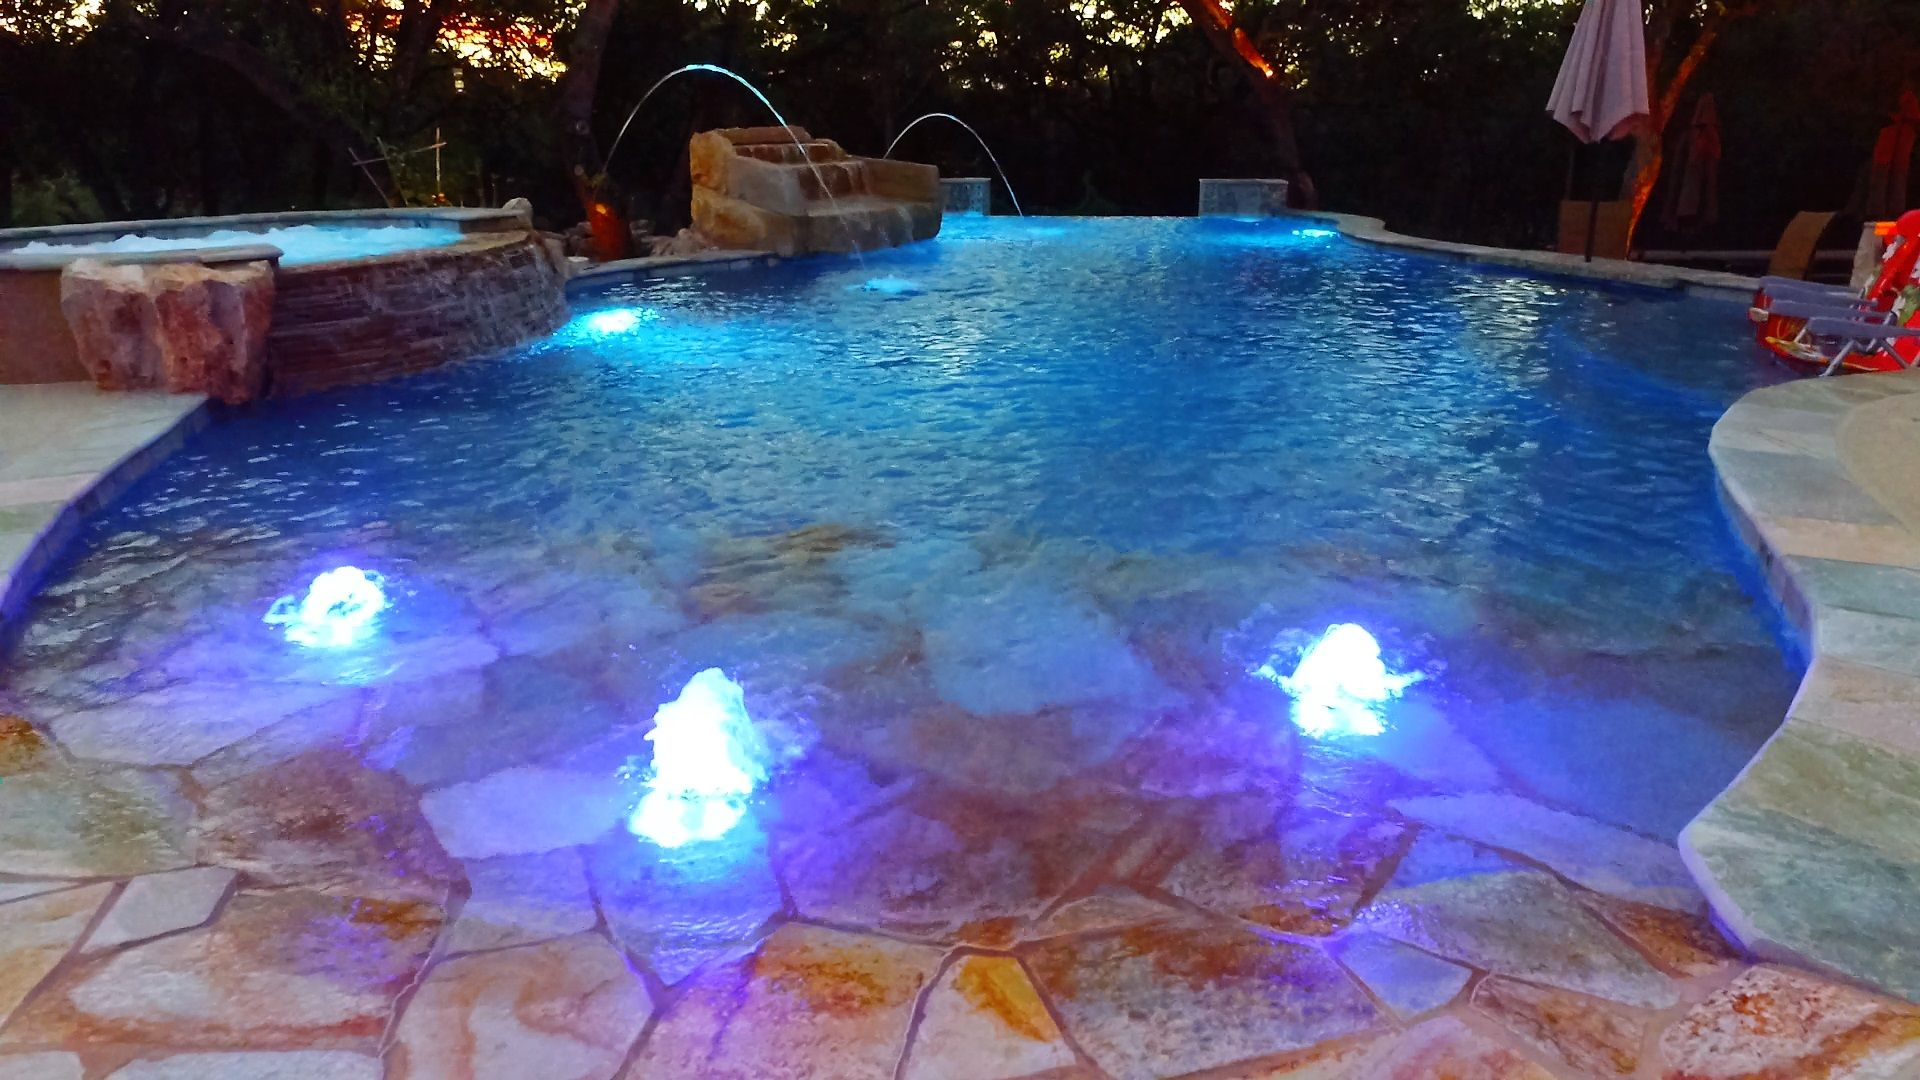 Are you looking to fix your #Pool #Lights or looking for new #Poollight ideas? Contact Trinity Today!